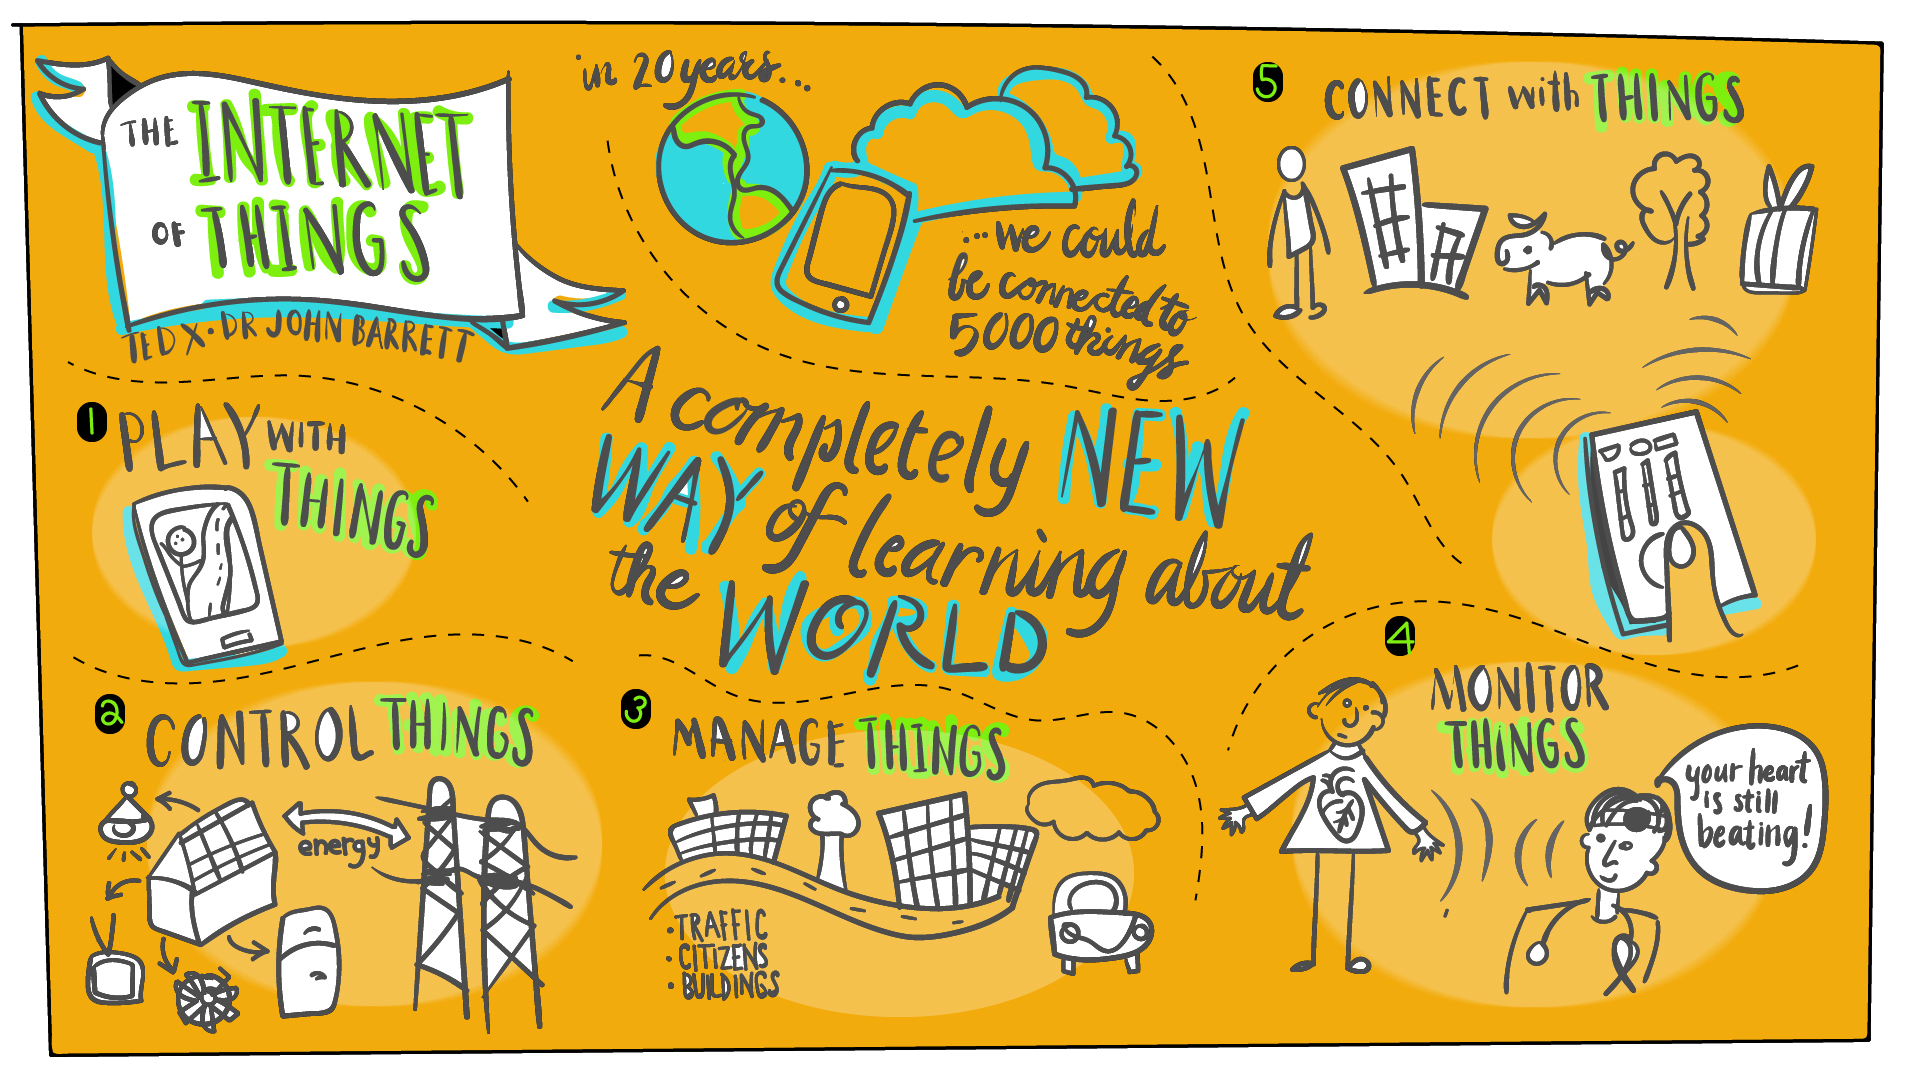 digital sketchnoting practice the internet of things